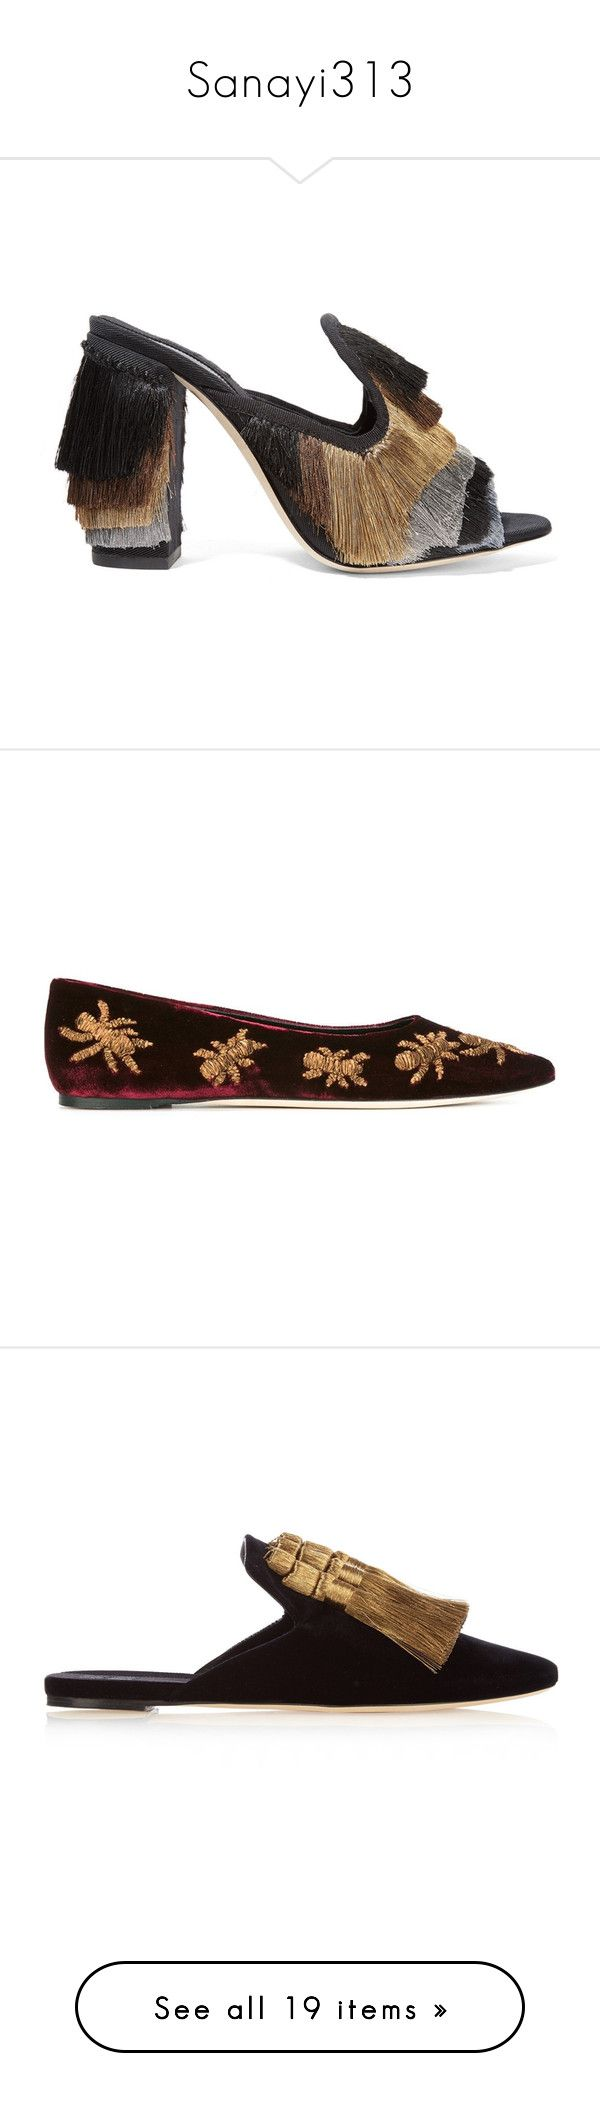 """""""Sanayi313"""" by maria-kononets ❤ liked on Polyvore featuring shoes, black, slip-on shoes, mule shoes, metallic slip on shoes, metallic shoes, embellished shoes, flats, red and ballet flats"""